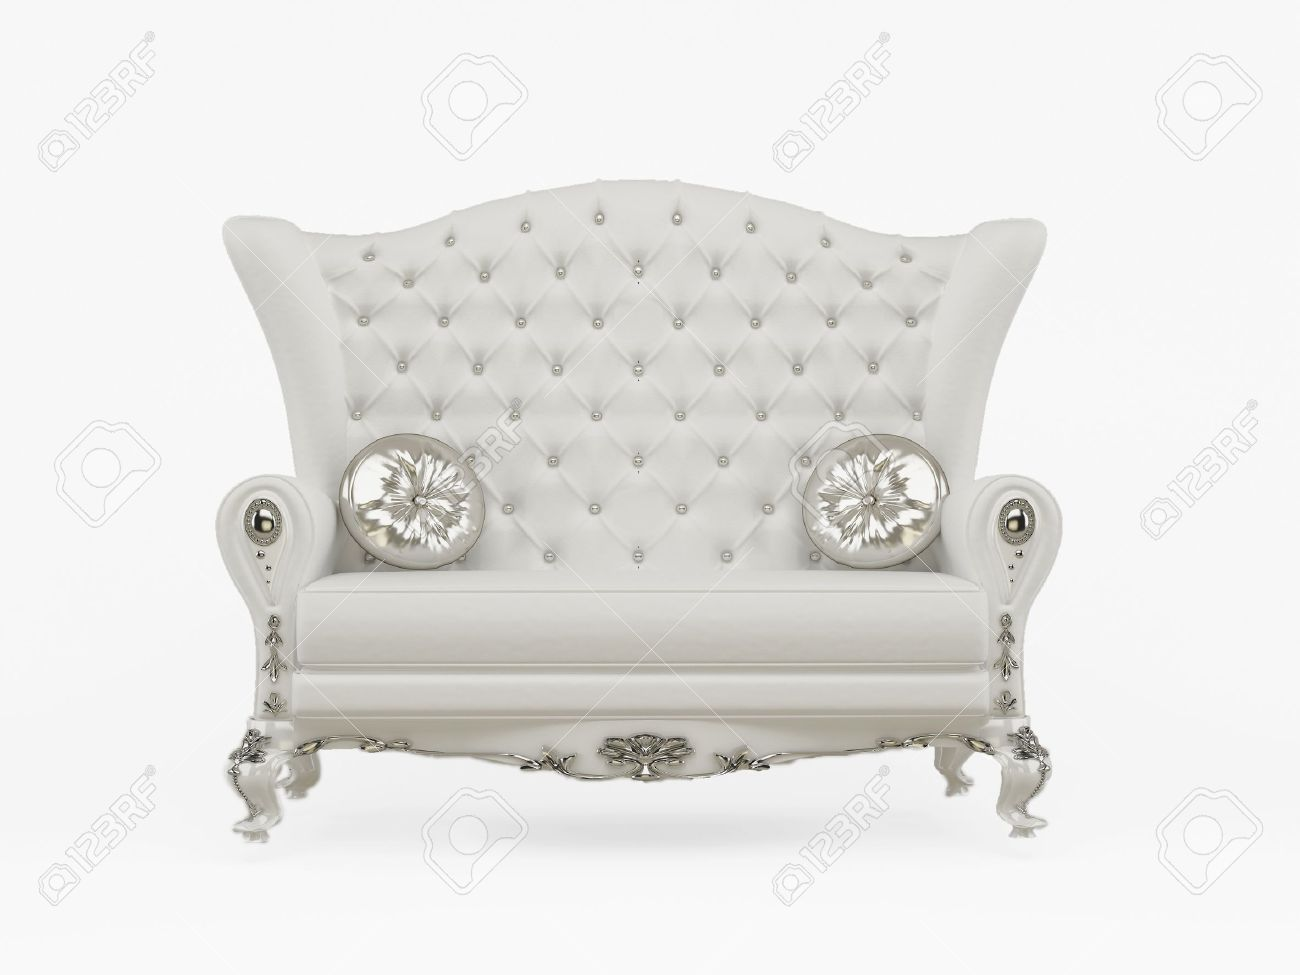 Modern sofa with decorative pillows isolated on white background